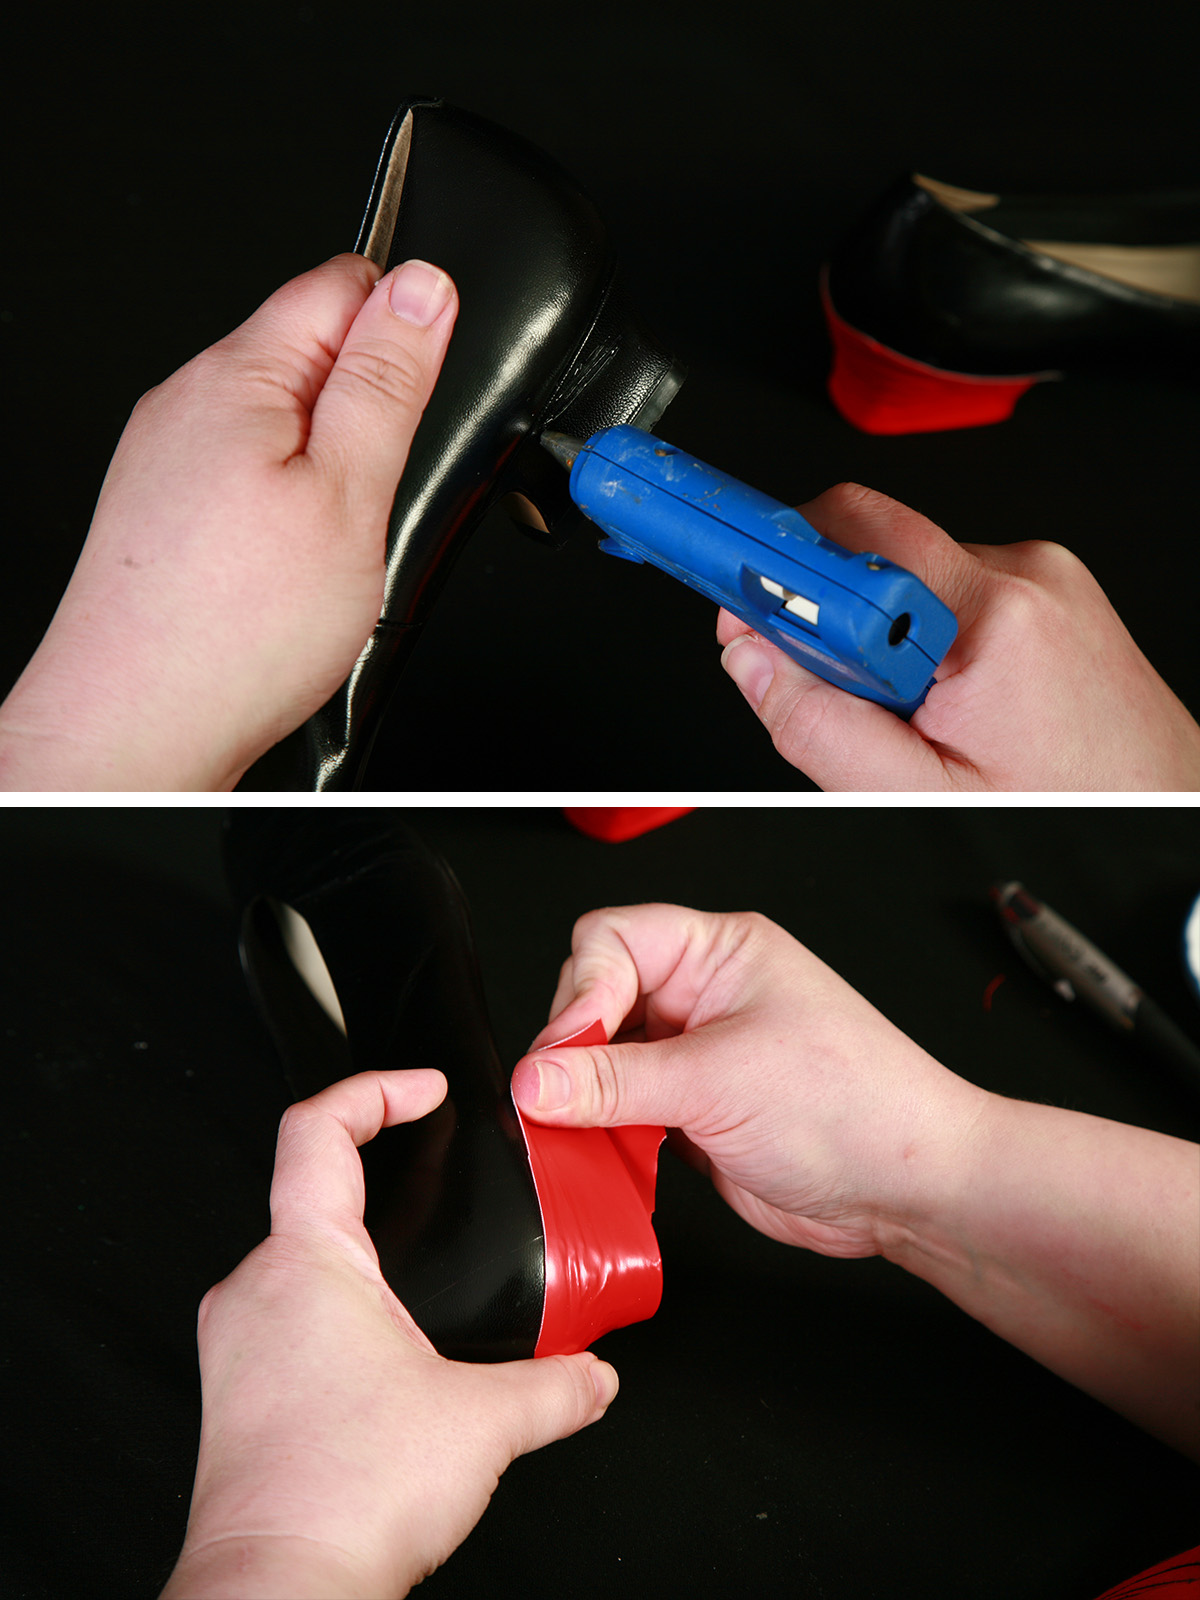 A two part compilation image showing a glue gun applying glue to the heel of a shoe, and hands stretching red fabric over the heel of that shoe.